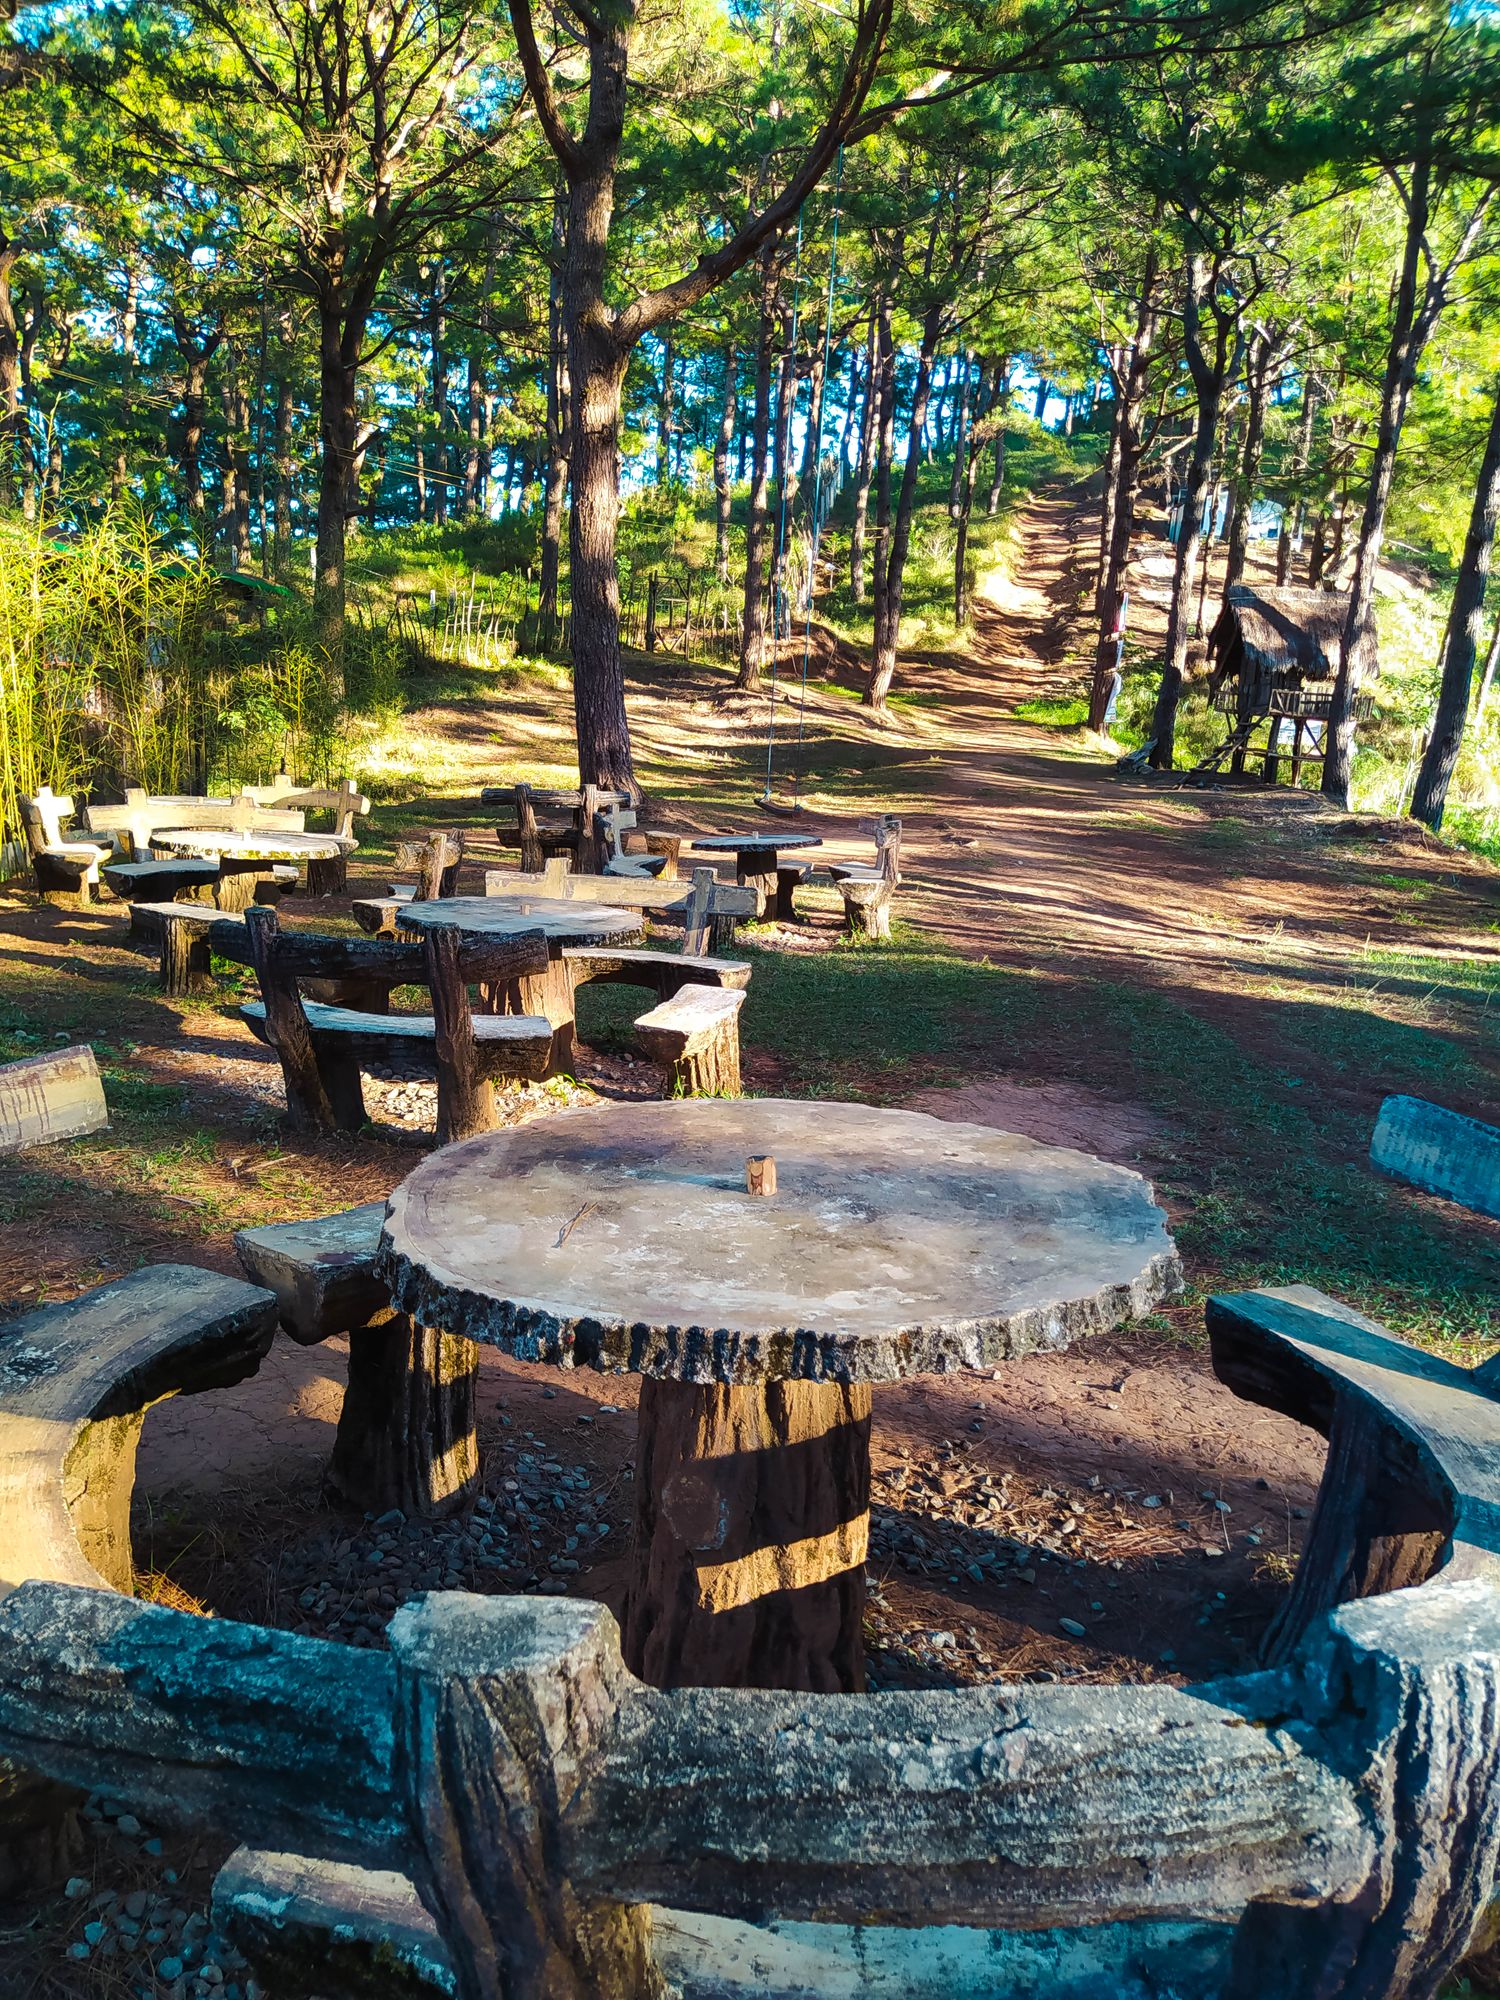 Picnic chairs and stables arrayed on a picnic area with many pine trees at Mount Kalugong